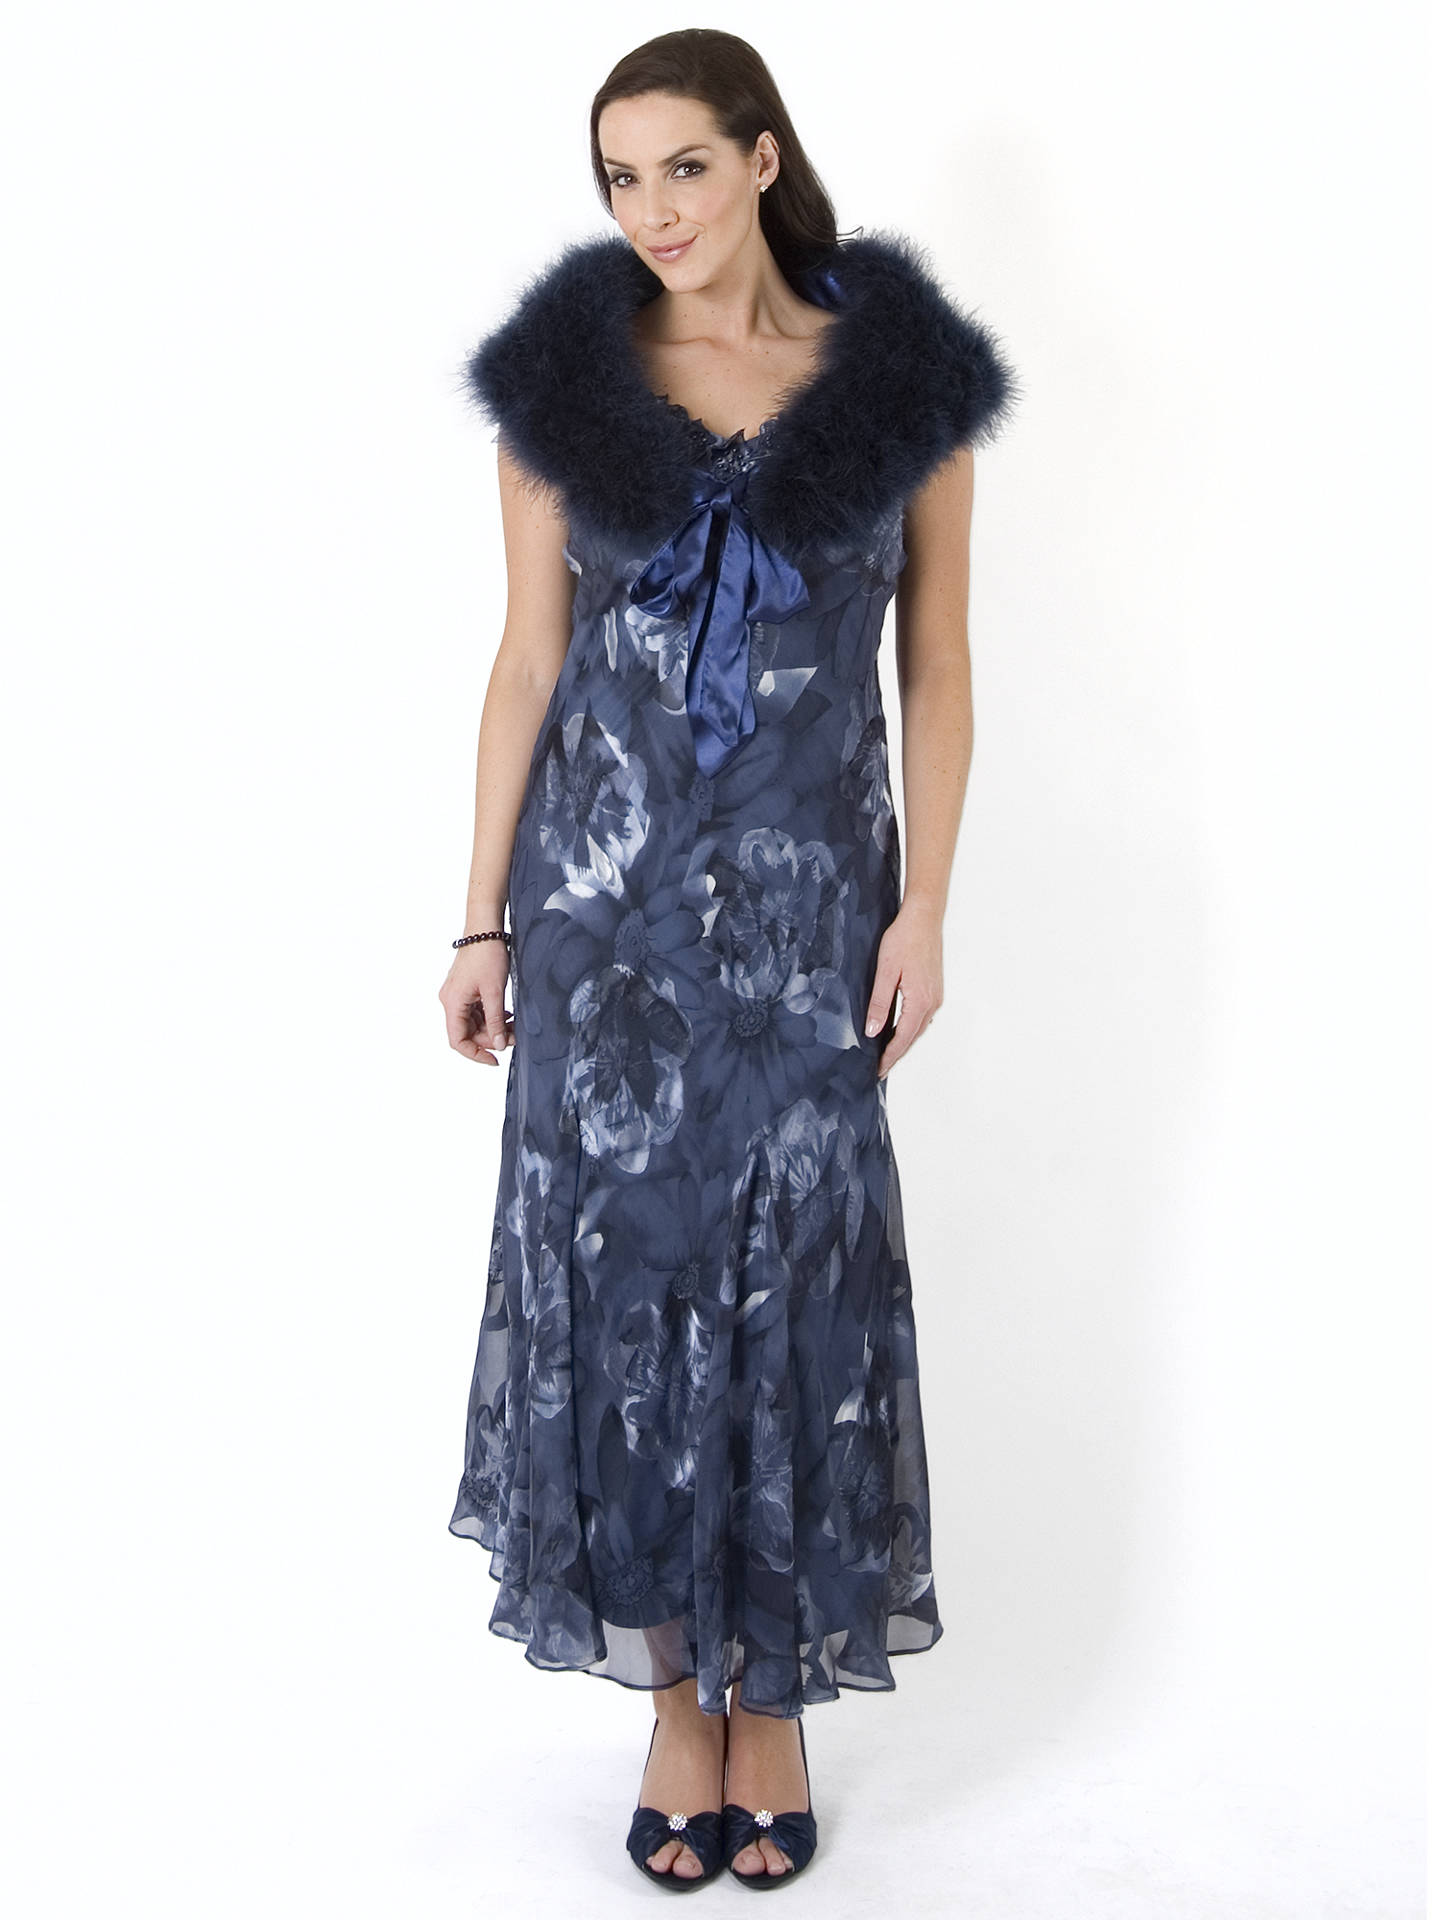 BuyChesca Dusk Floral Applique/Bead Trim Devoree Dress, Navy, 18 Online at johnlewis.com